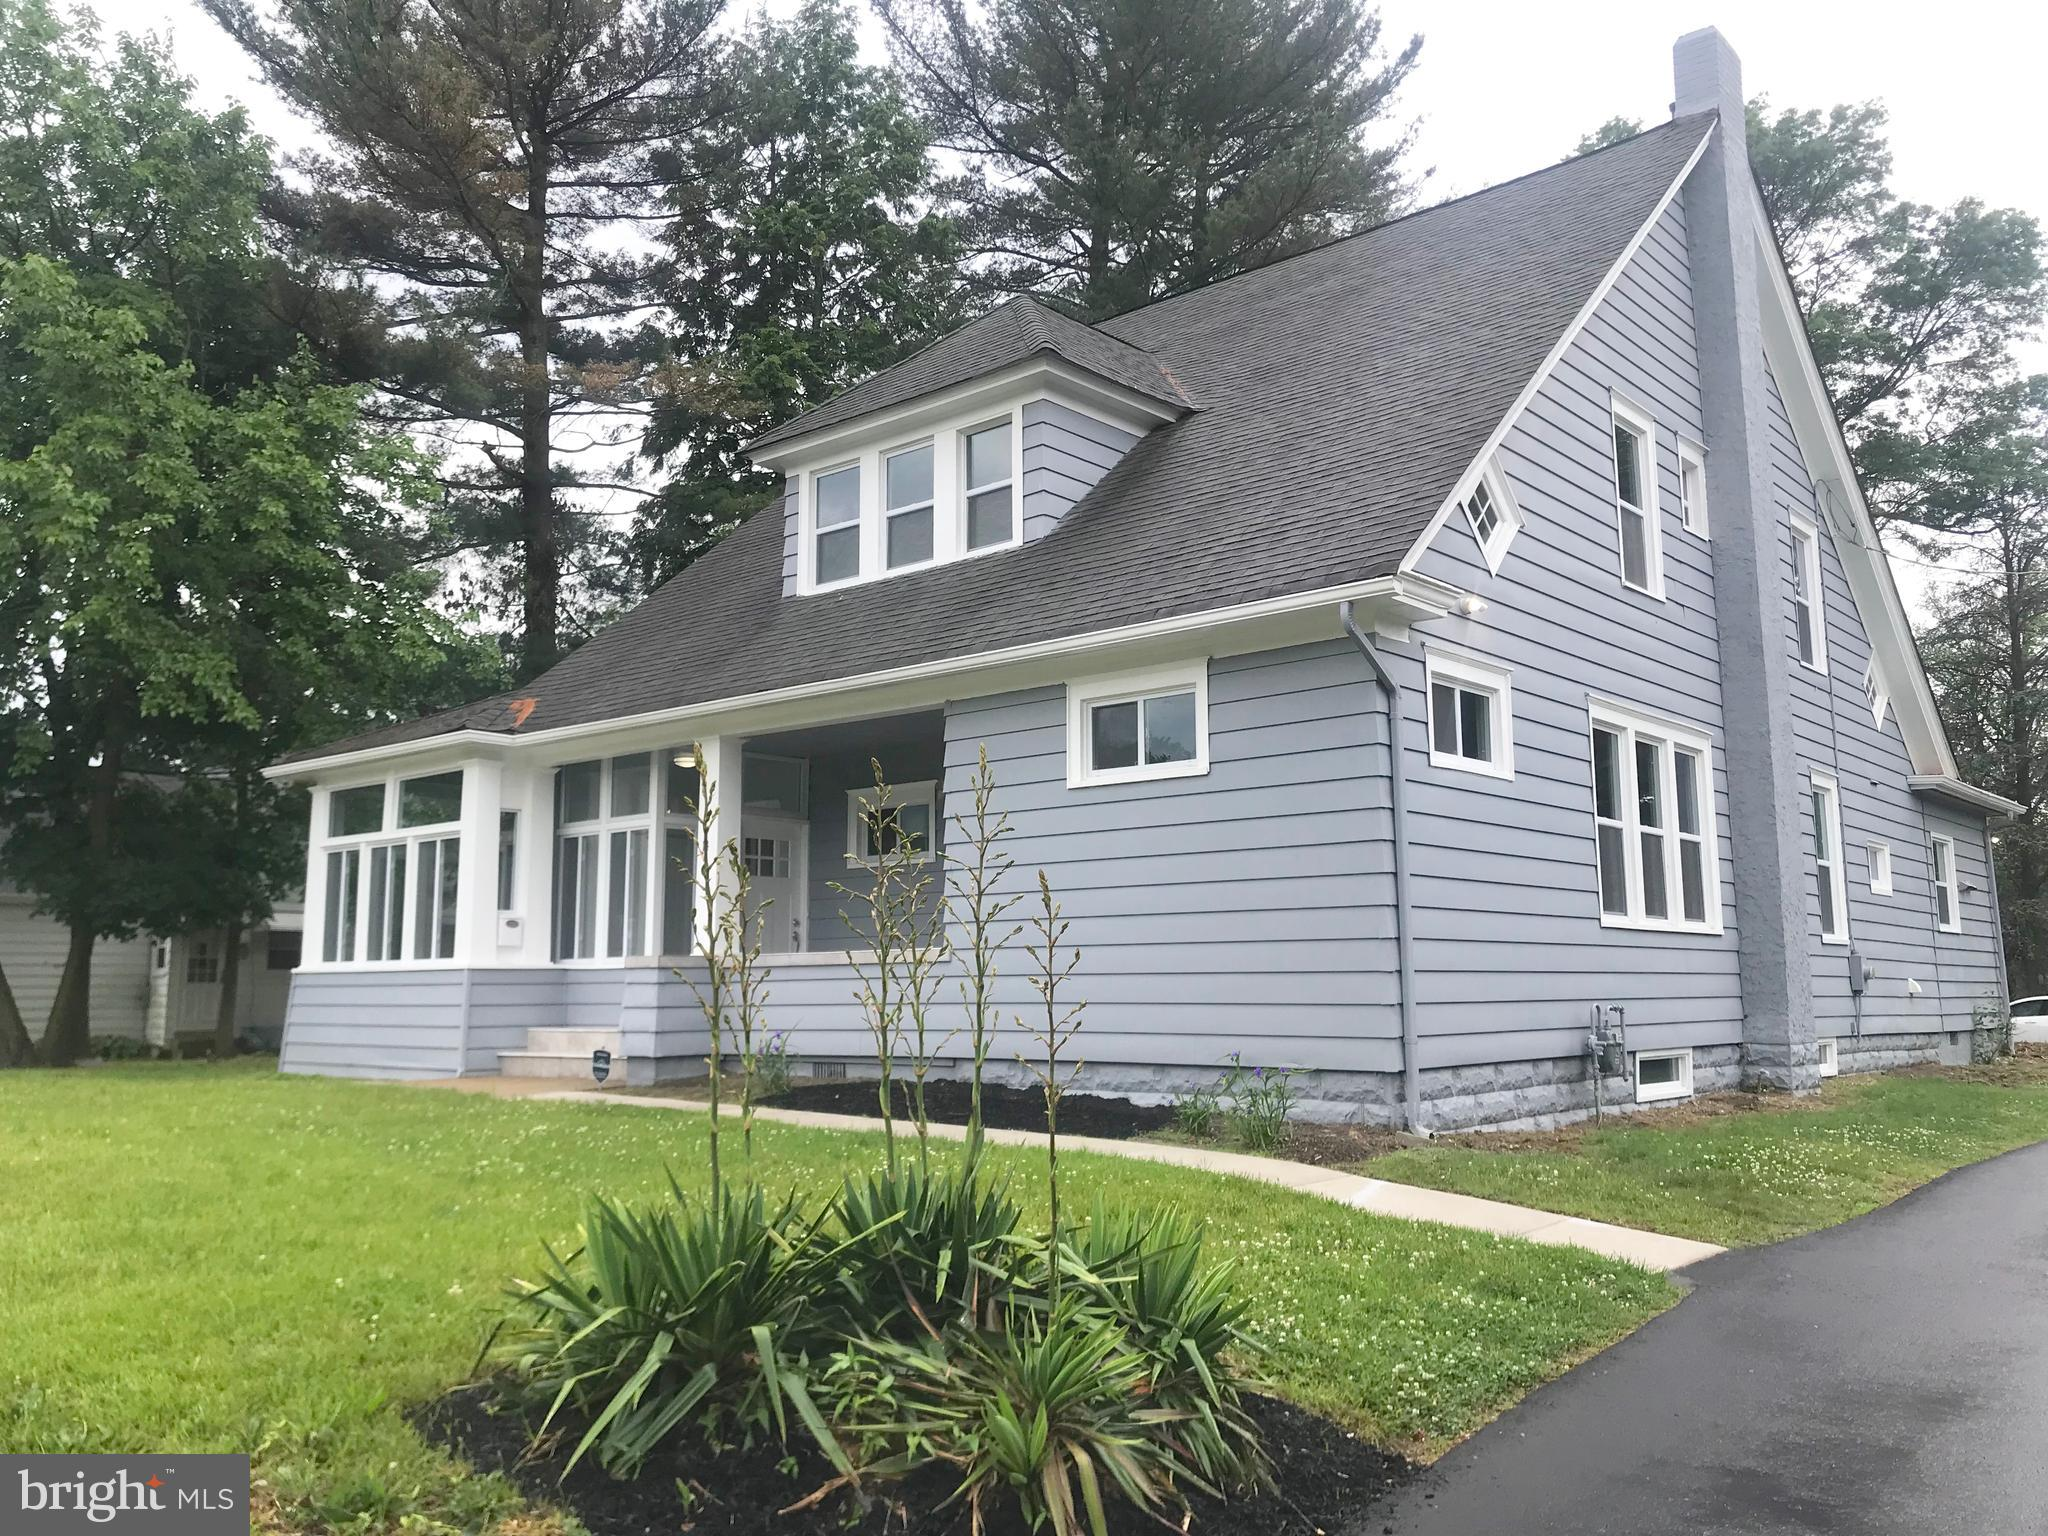 14 S WOODBURY ROAD, PITMAN, NJ 08071